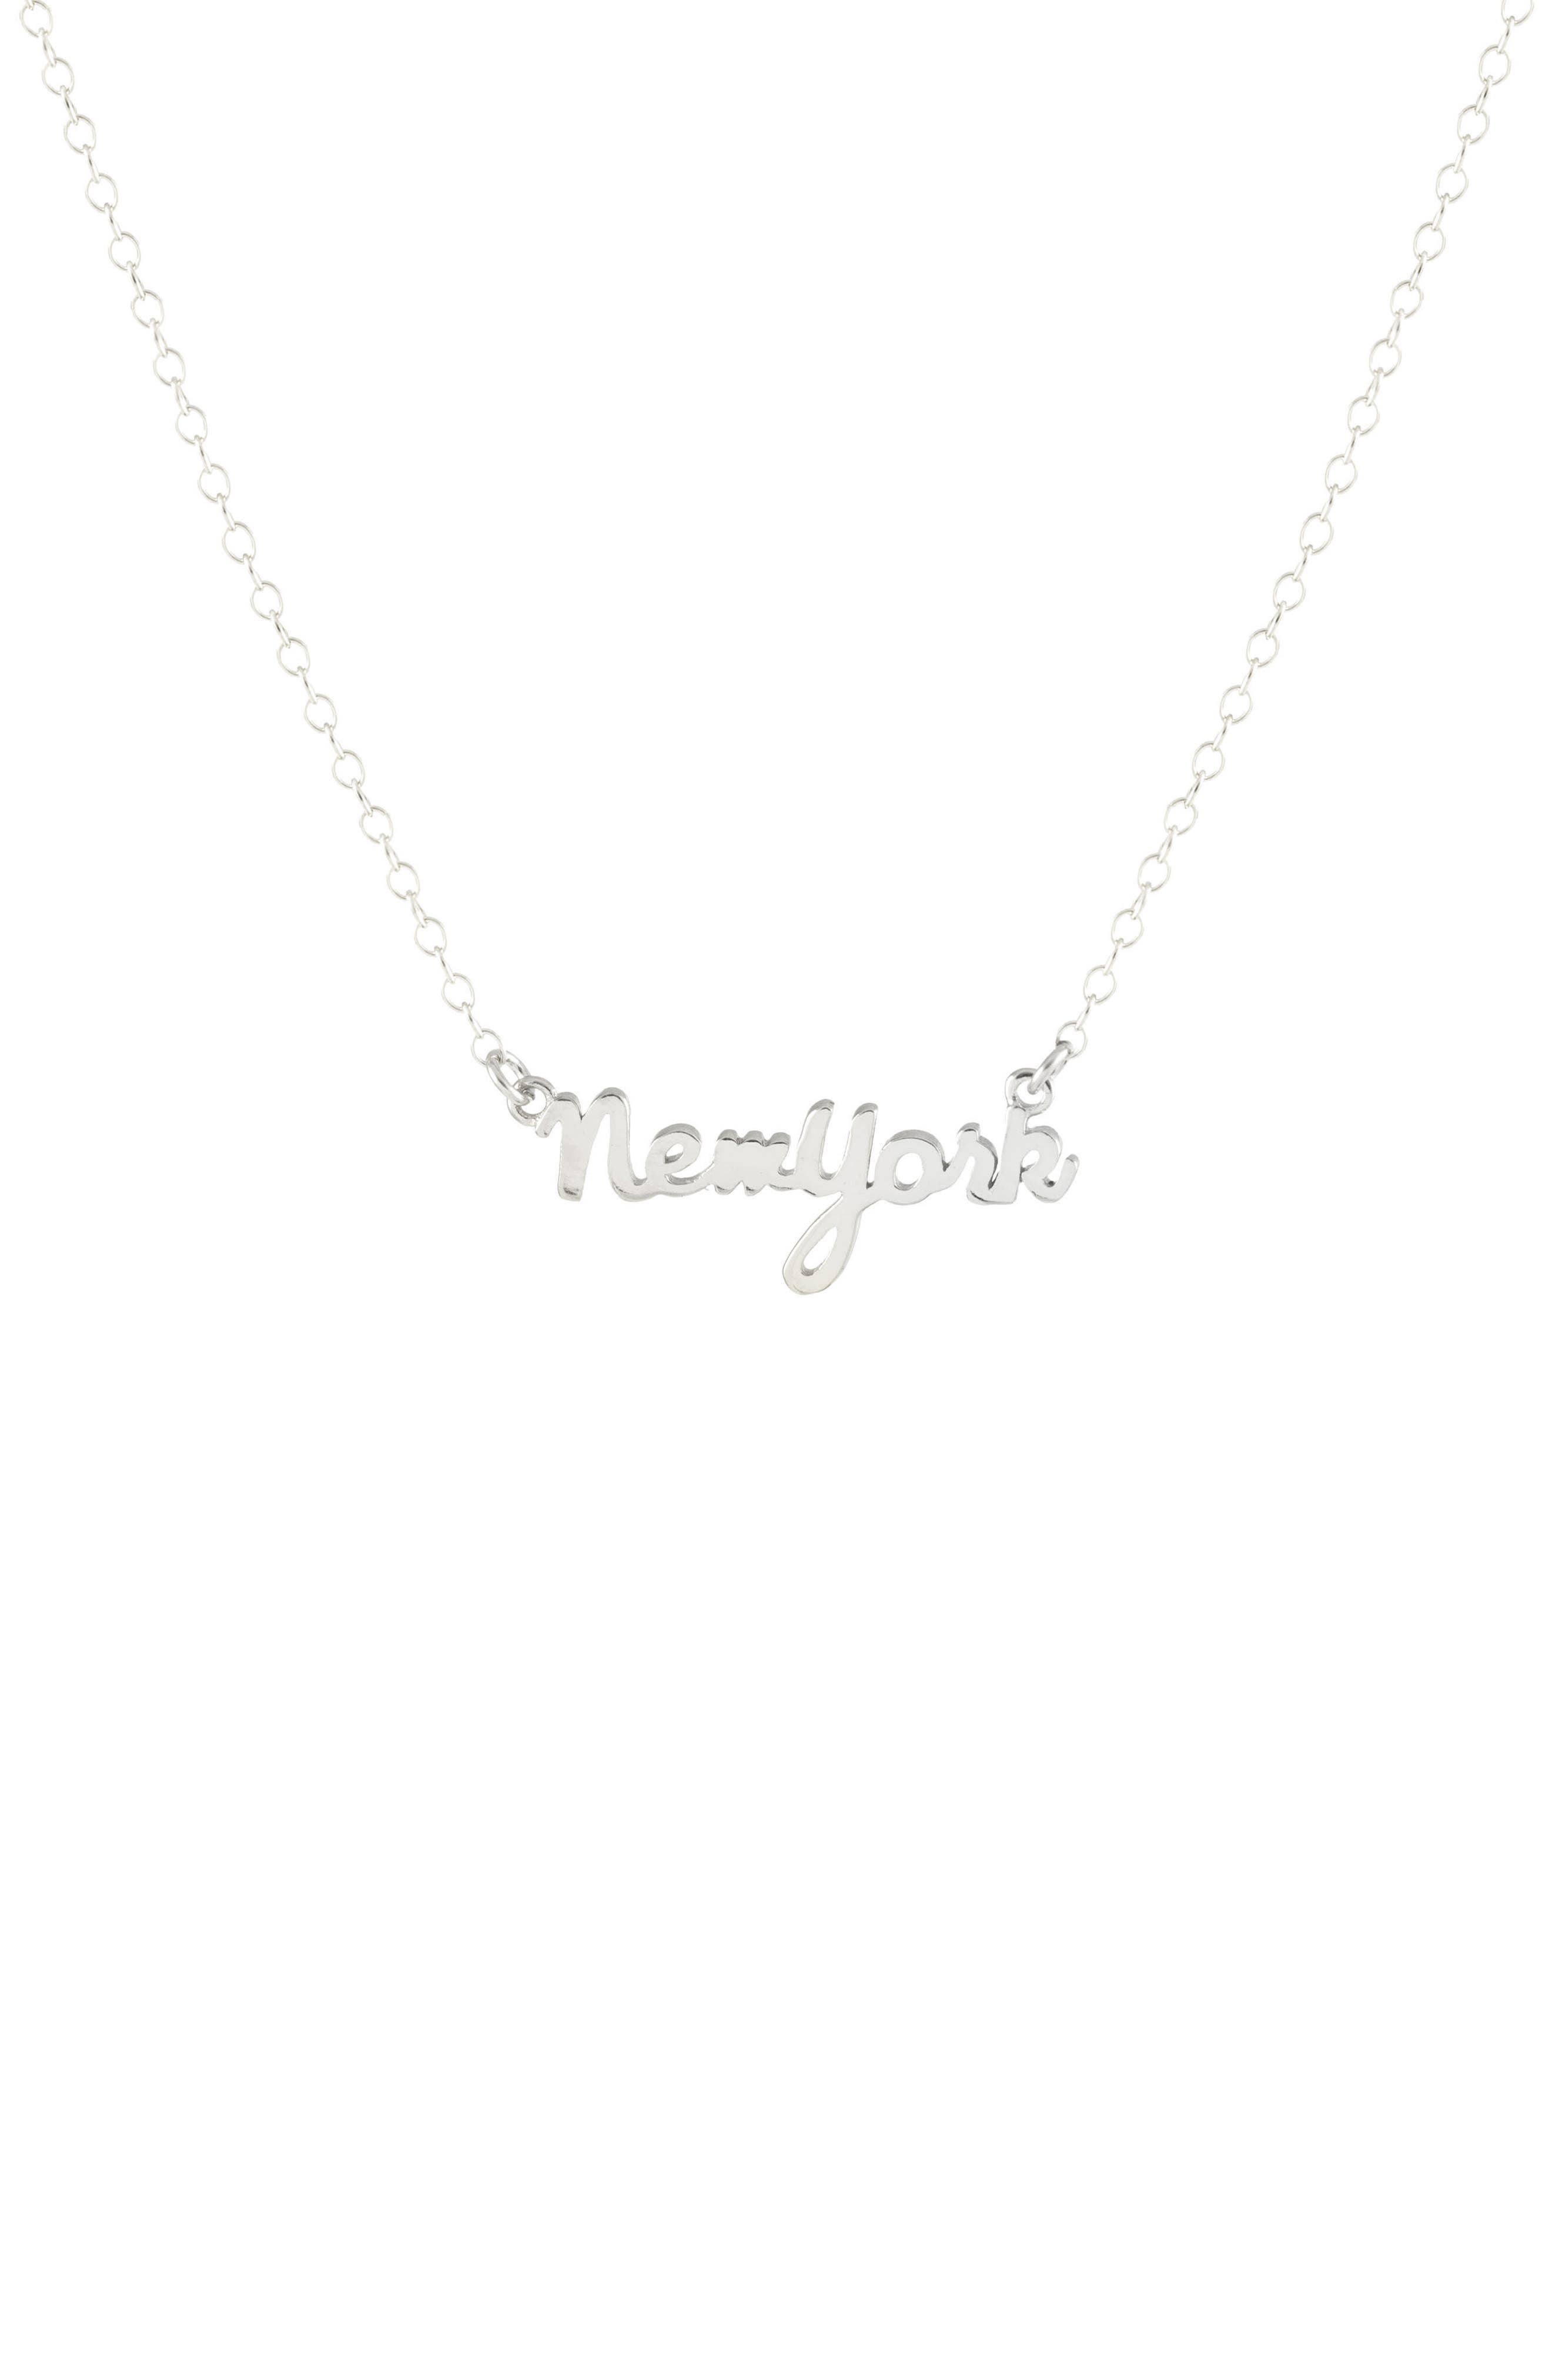 Alternate Image 1 Selected - Kris Nations State Script Charm Necklace